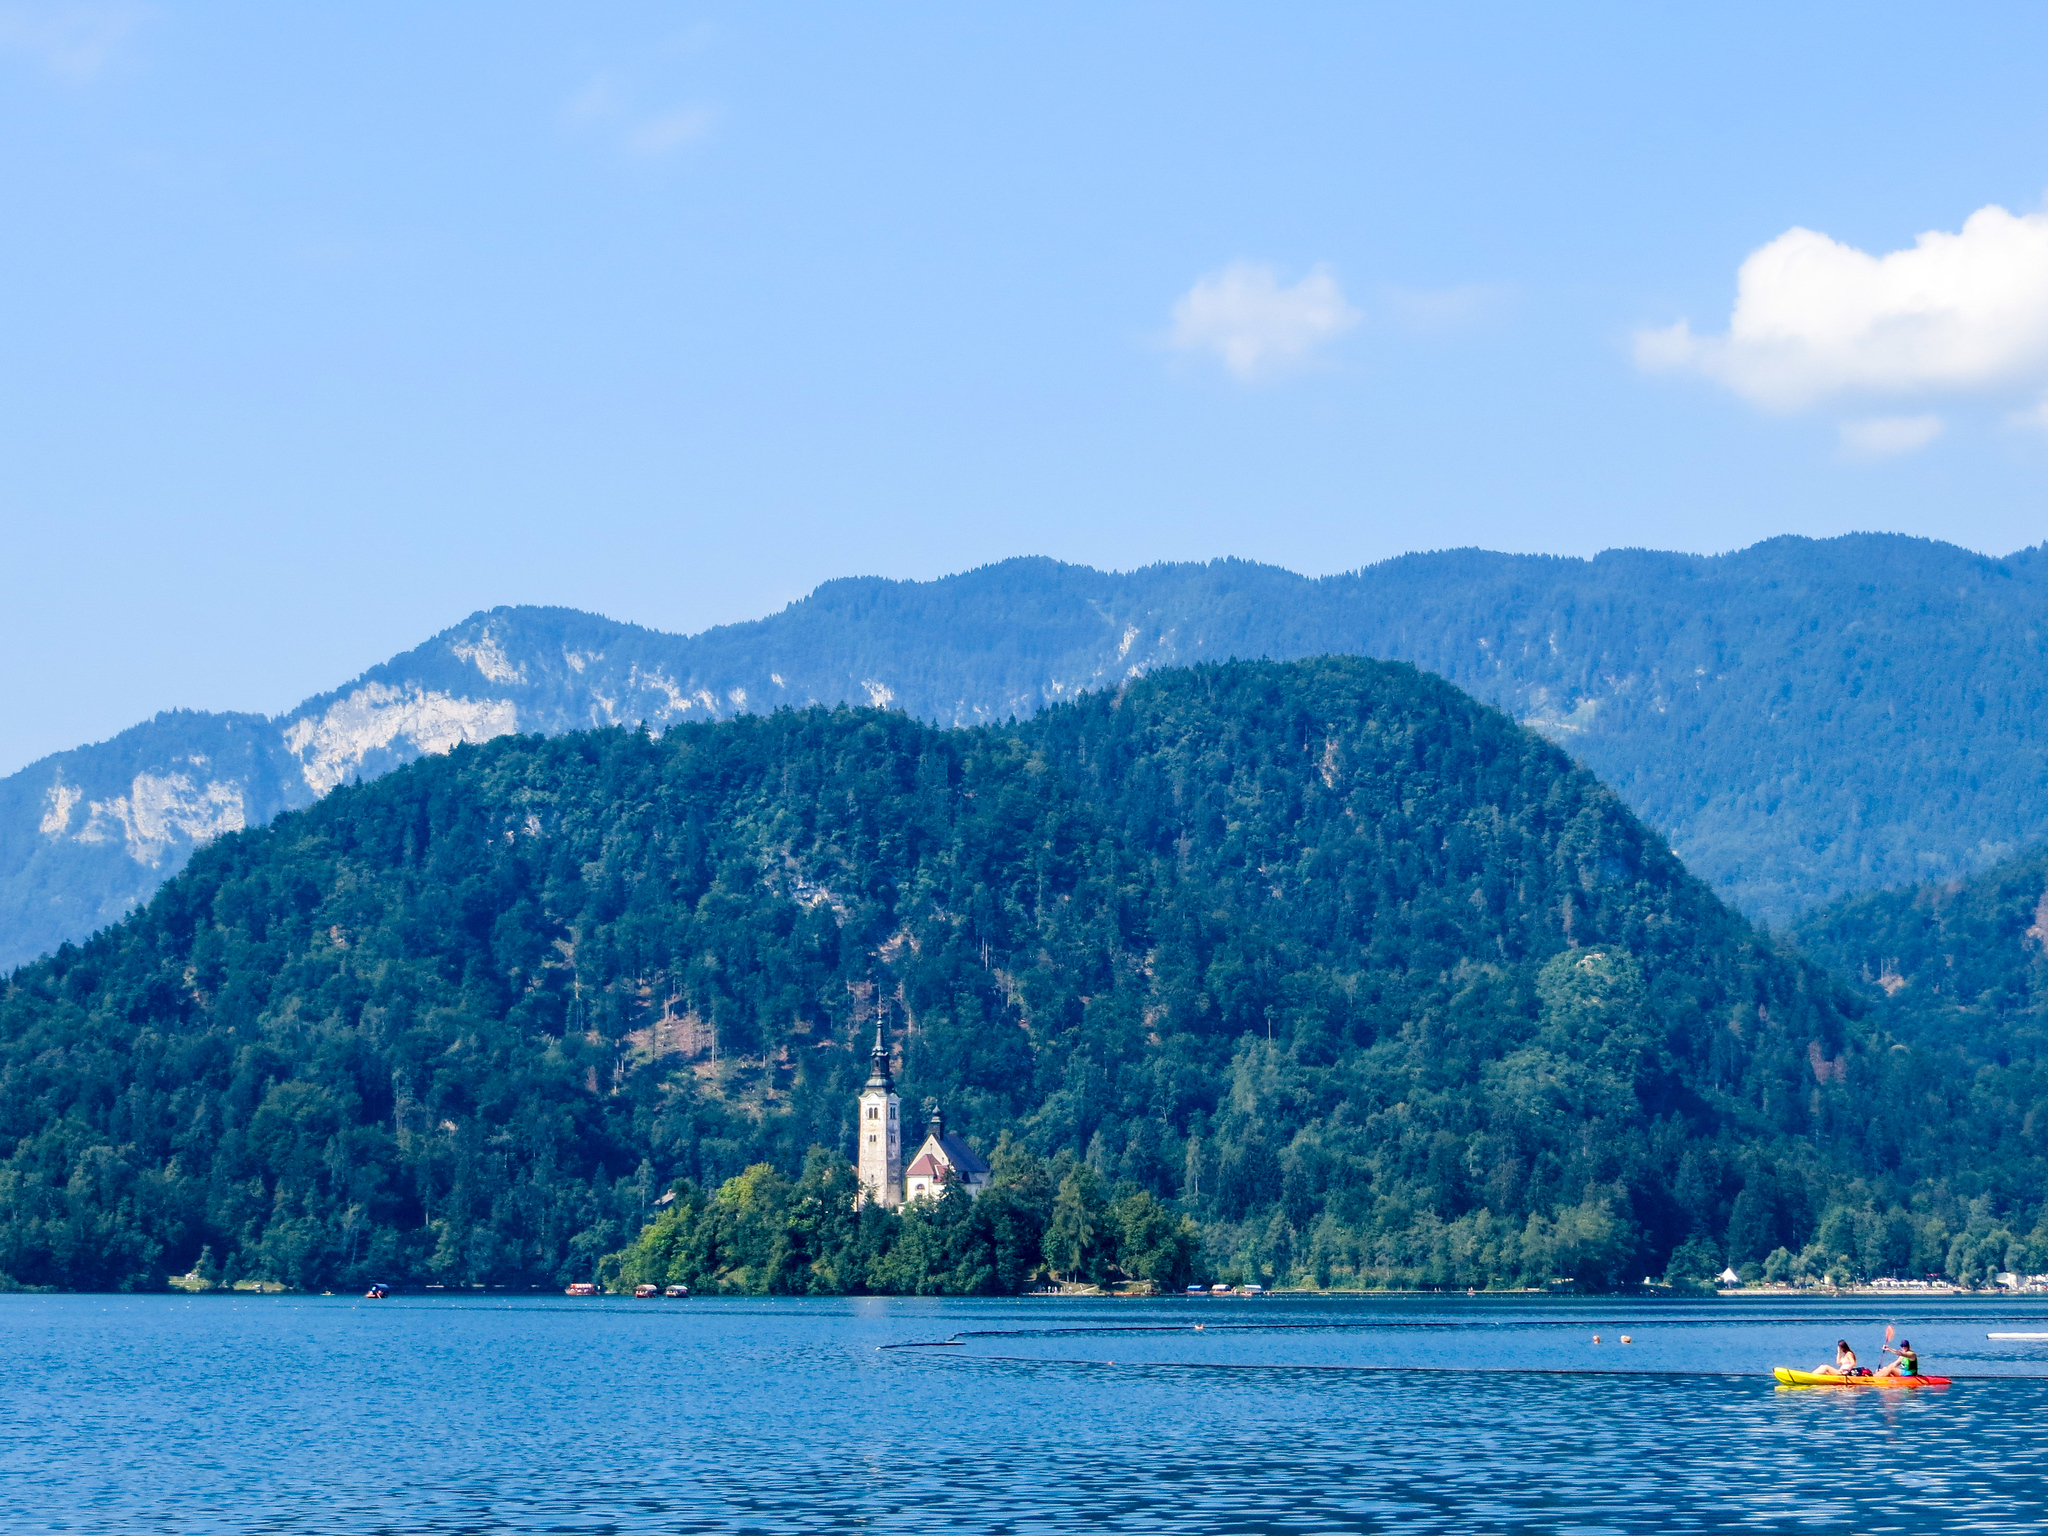 a visit to lake bled promises gorgeous nature